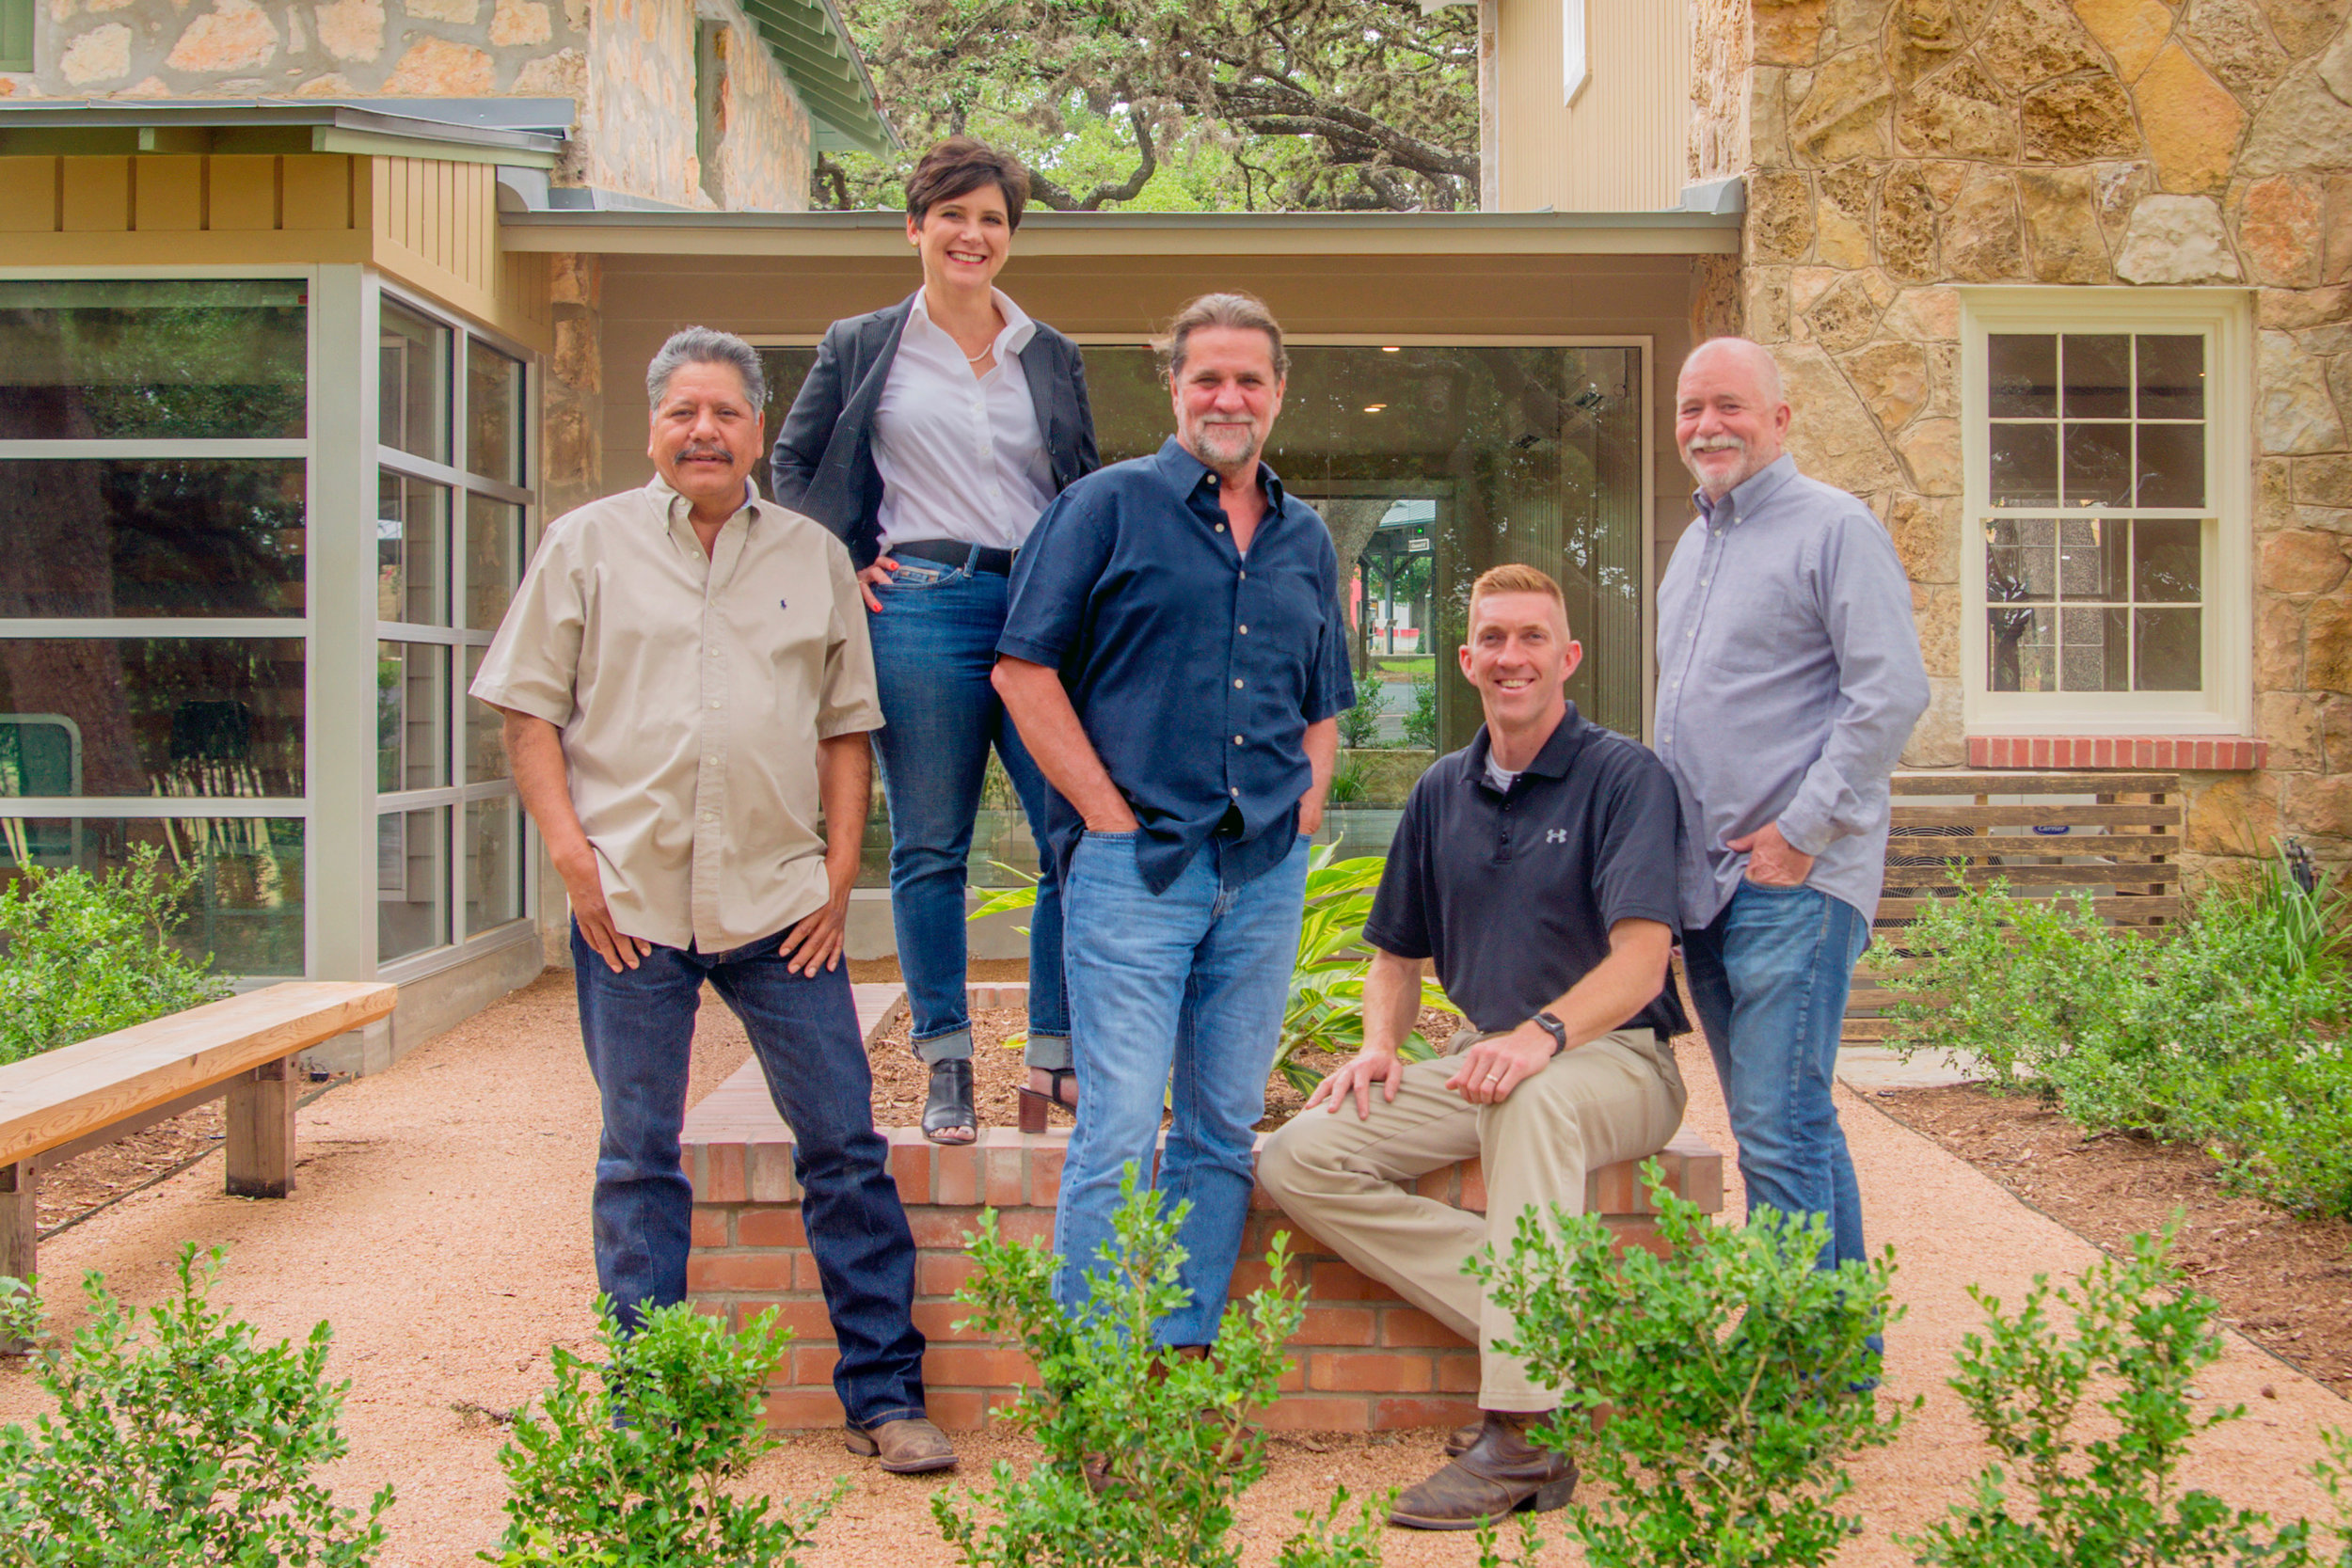 The Zoeller Haus restoration team included (L-R) Erasmo Arreola, Melissa Haberstroh, Robert Thornton, Travis Roberson and Danny Kreifels.